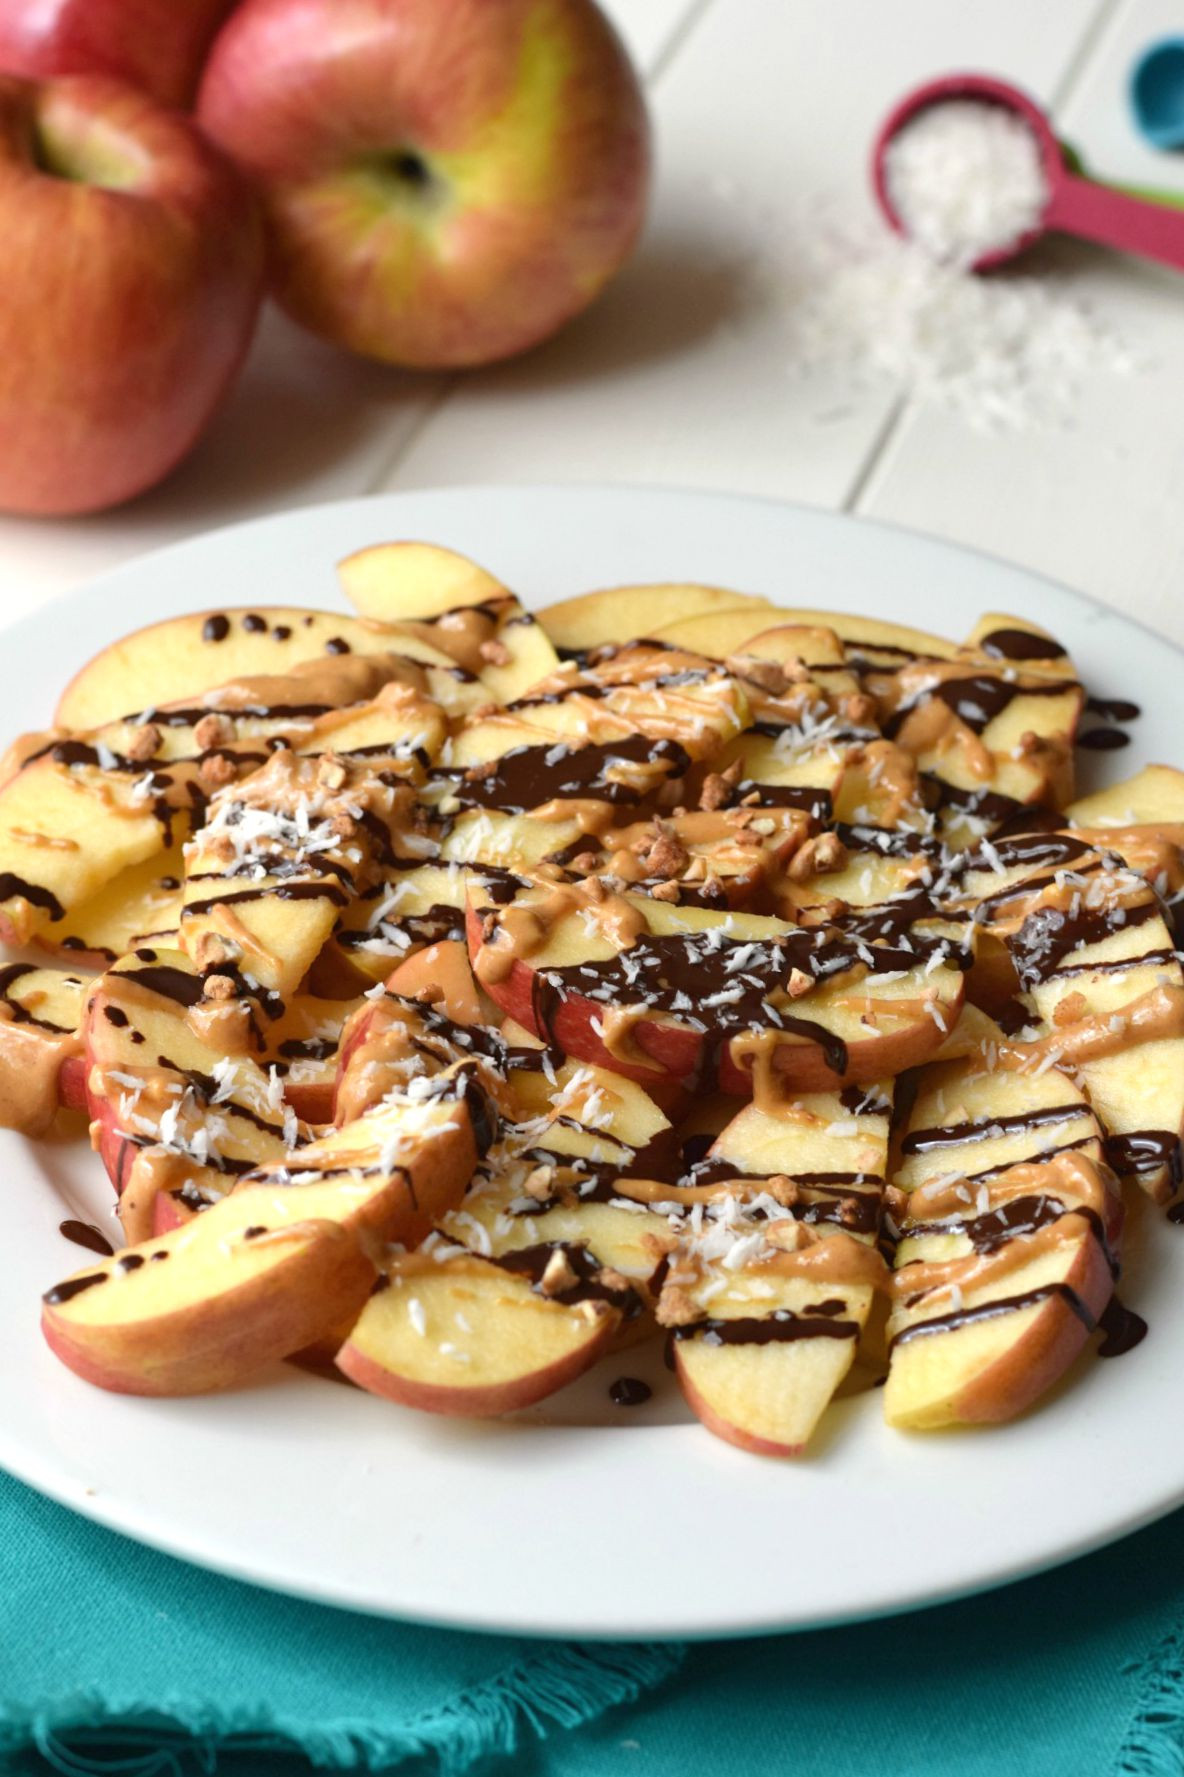 Healthy Snacks With Peanut Butter  Dark Chocolate Peanut Butter Apples Feel Great in 8 Blog